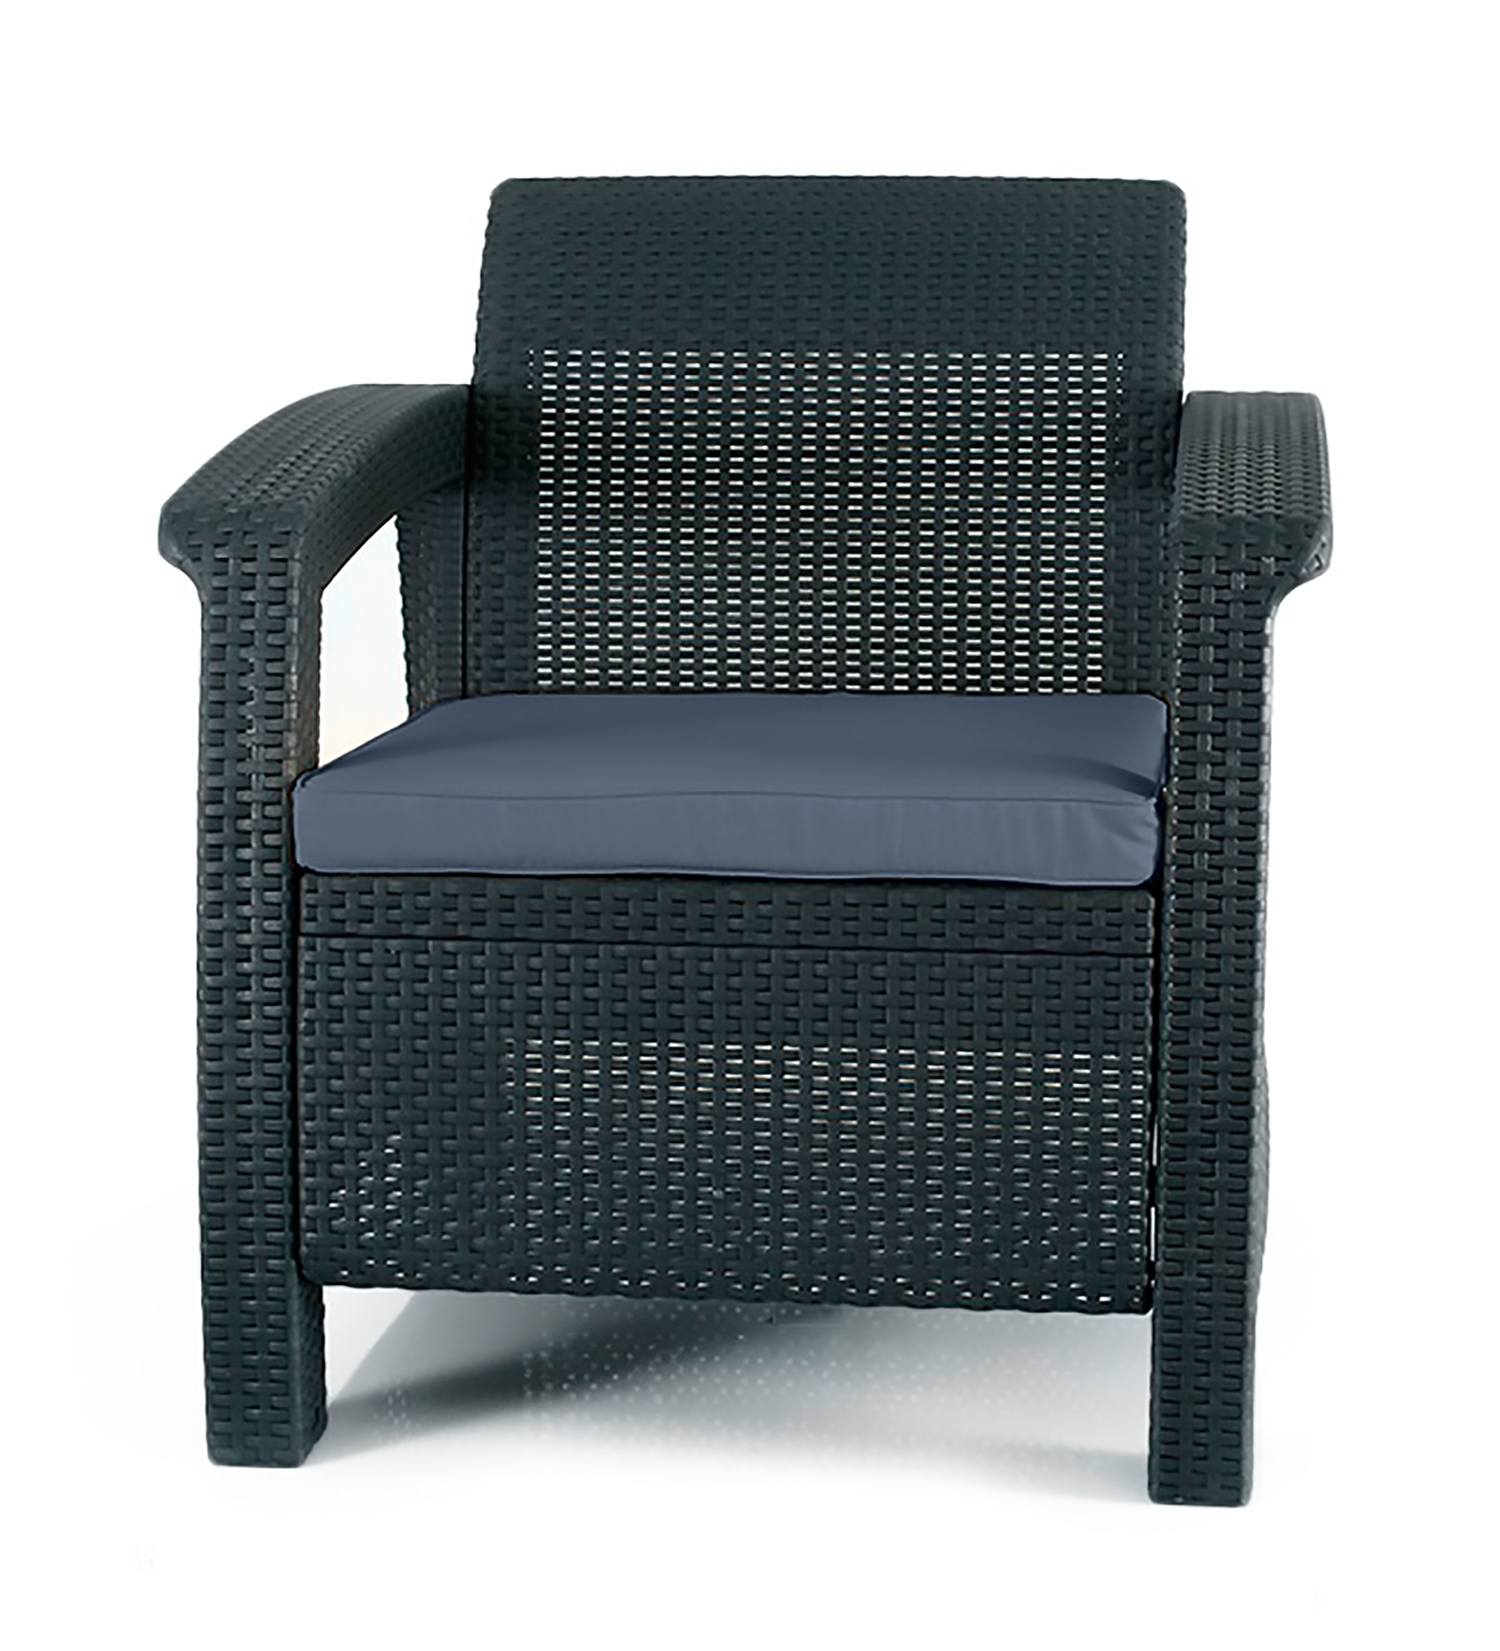 Keter Corfu Resin Armchair With Cushions, All Weather Plastic Patio  Furniture, Charcoal Gray